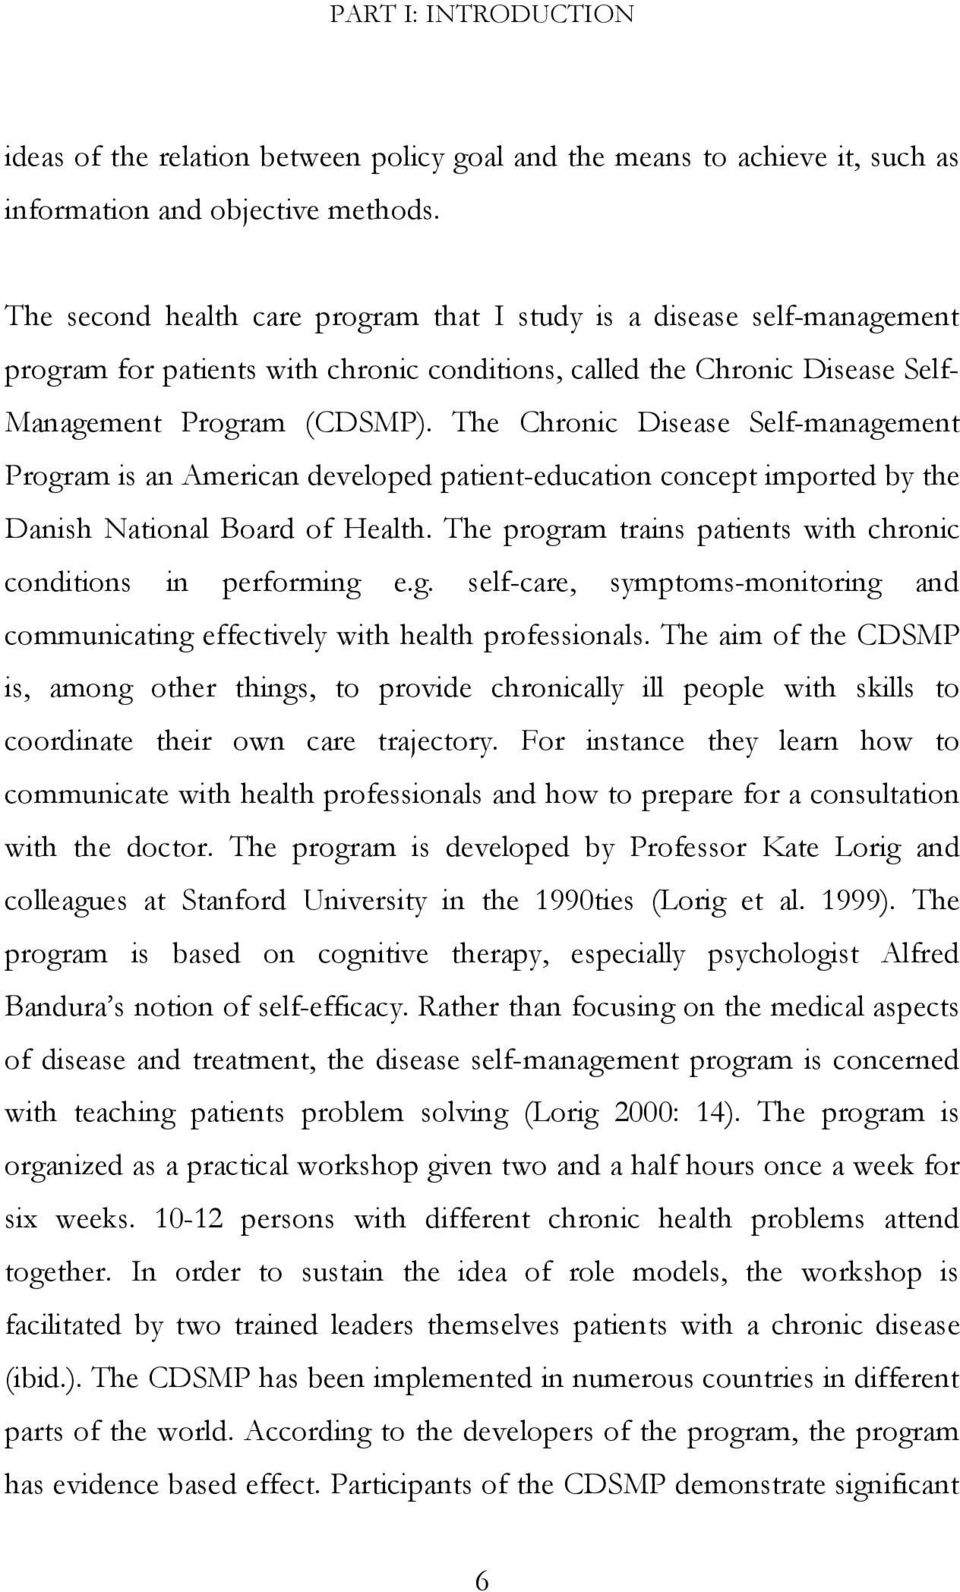 The Chronic Disease Self-management Program is an American developed patient-education concept imported by the Danish National Board of Health.